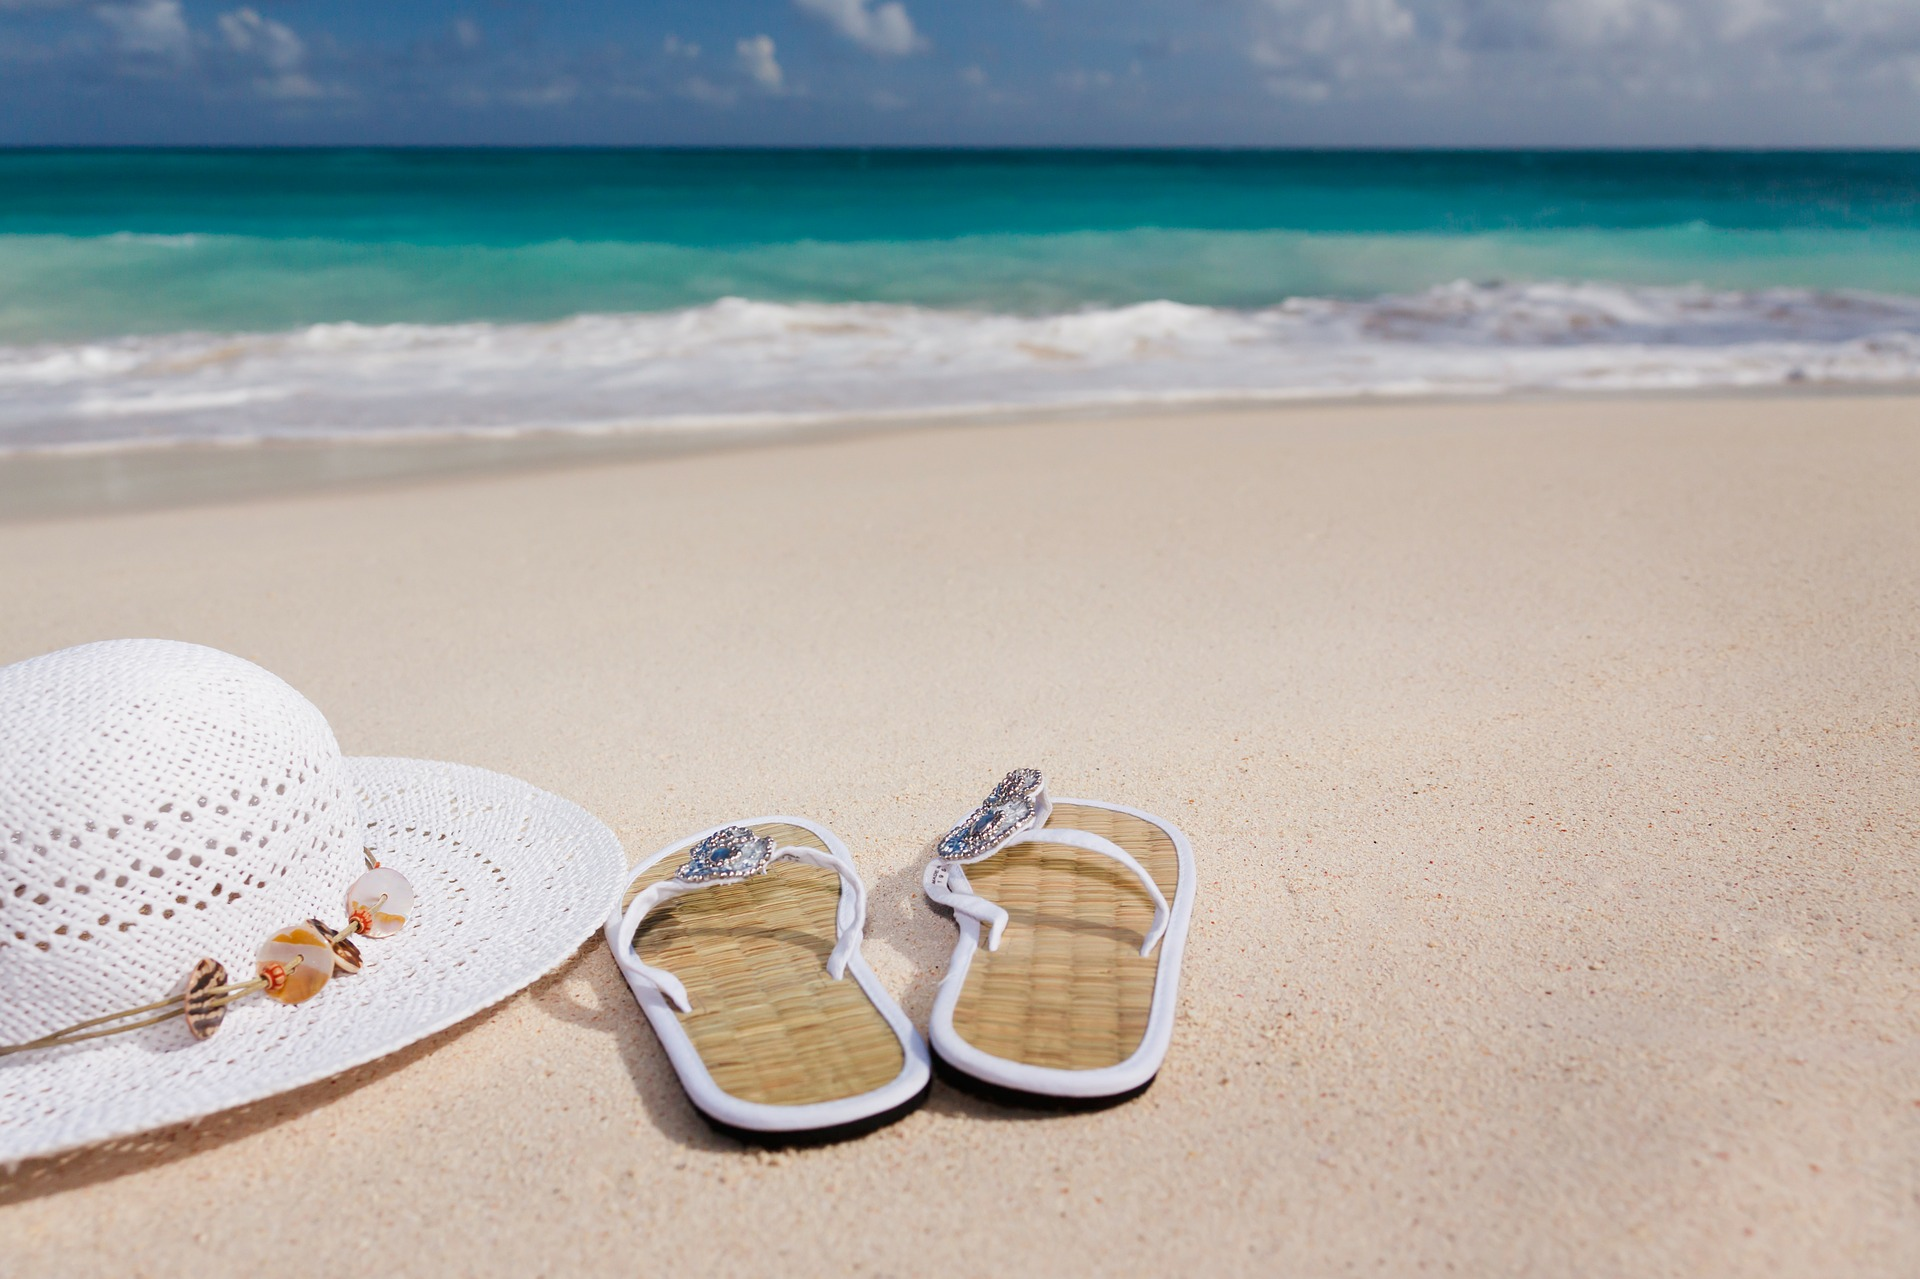 Dental implant vacations in Cancun: The best place to get snap in dentures